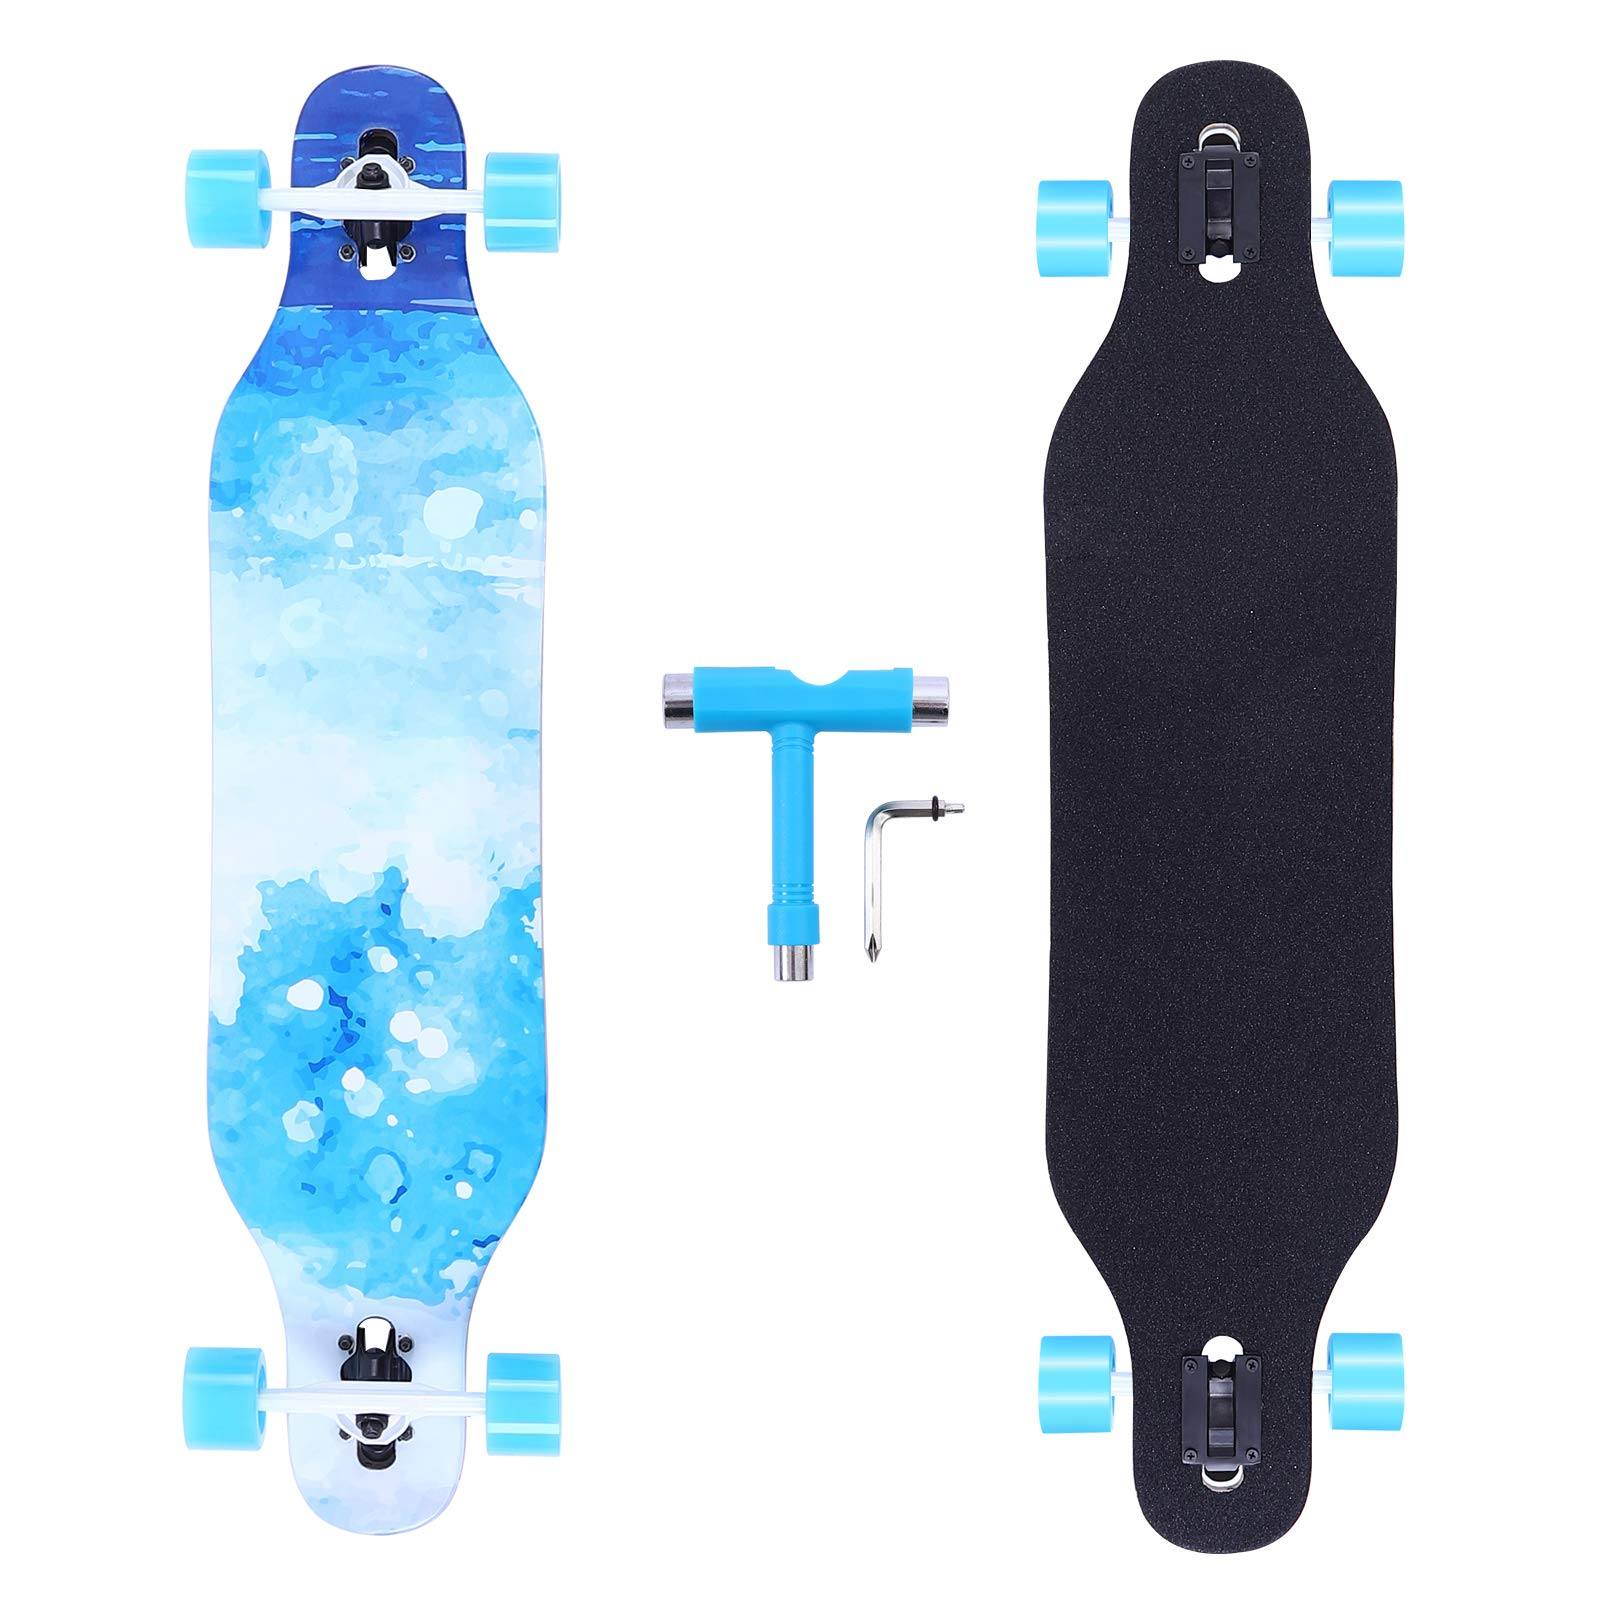 BOCIN 41 inch Freeride Longboard Drop Through Skateboard 8 Ply Canadian Maple Complete Cruiser for Cruising, Carving, Free-Style and Downhill